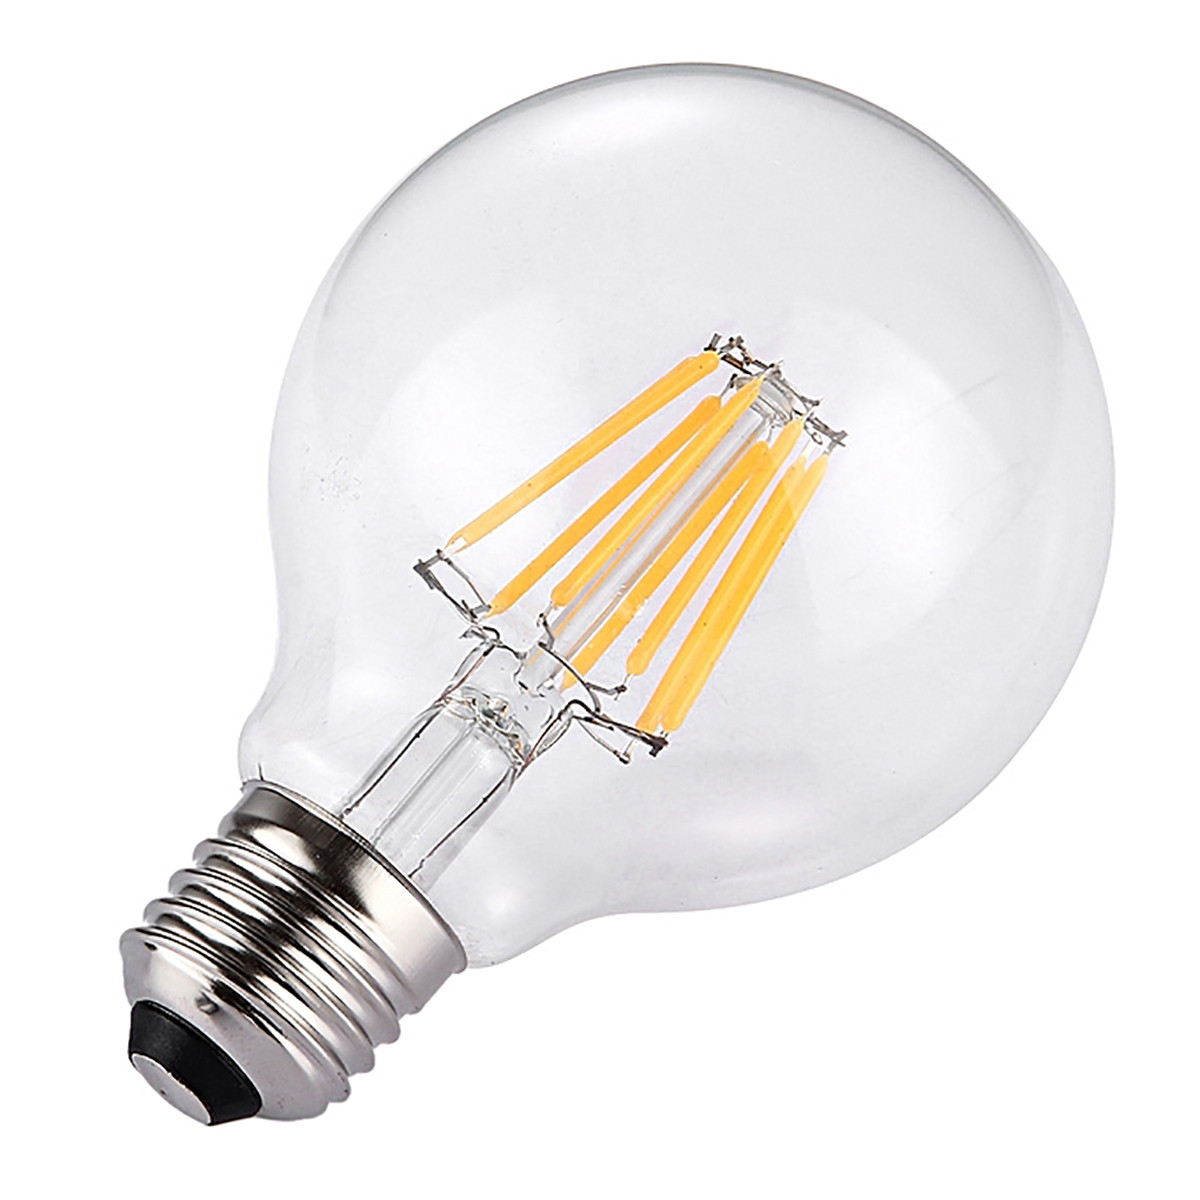 8W Filament LED Globe Light Bulb Light G80 Flame Tip Chandelier Bulb with E26 Base 80W Equivalent Halogen Replacement